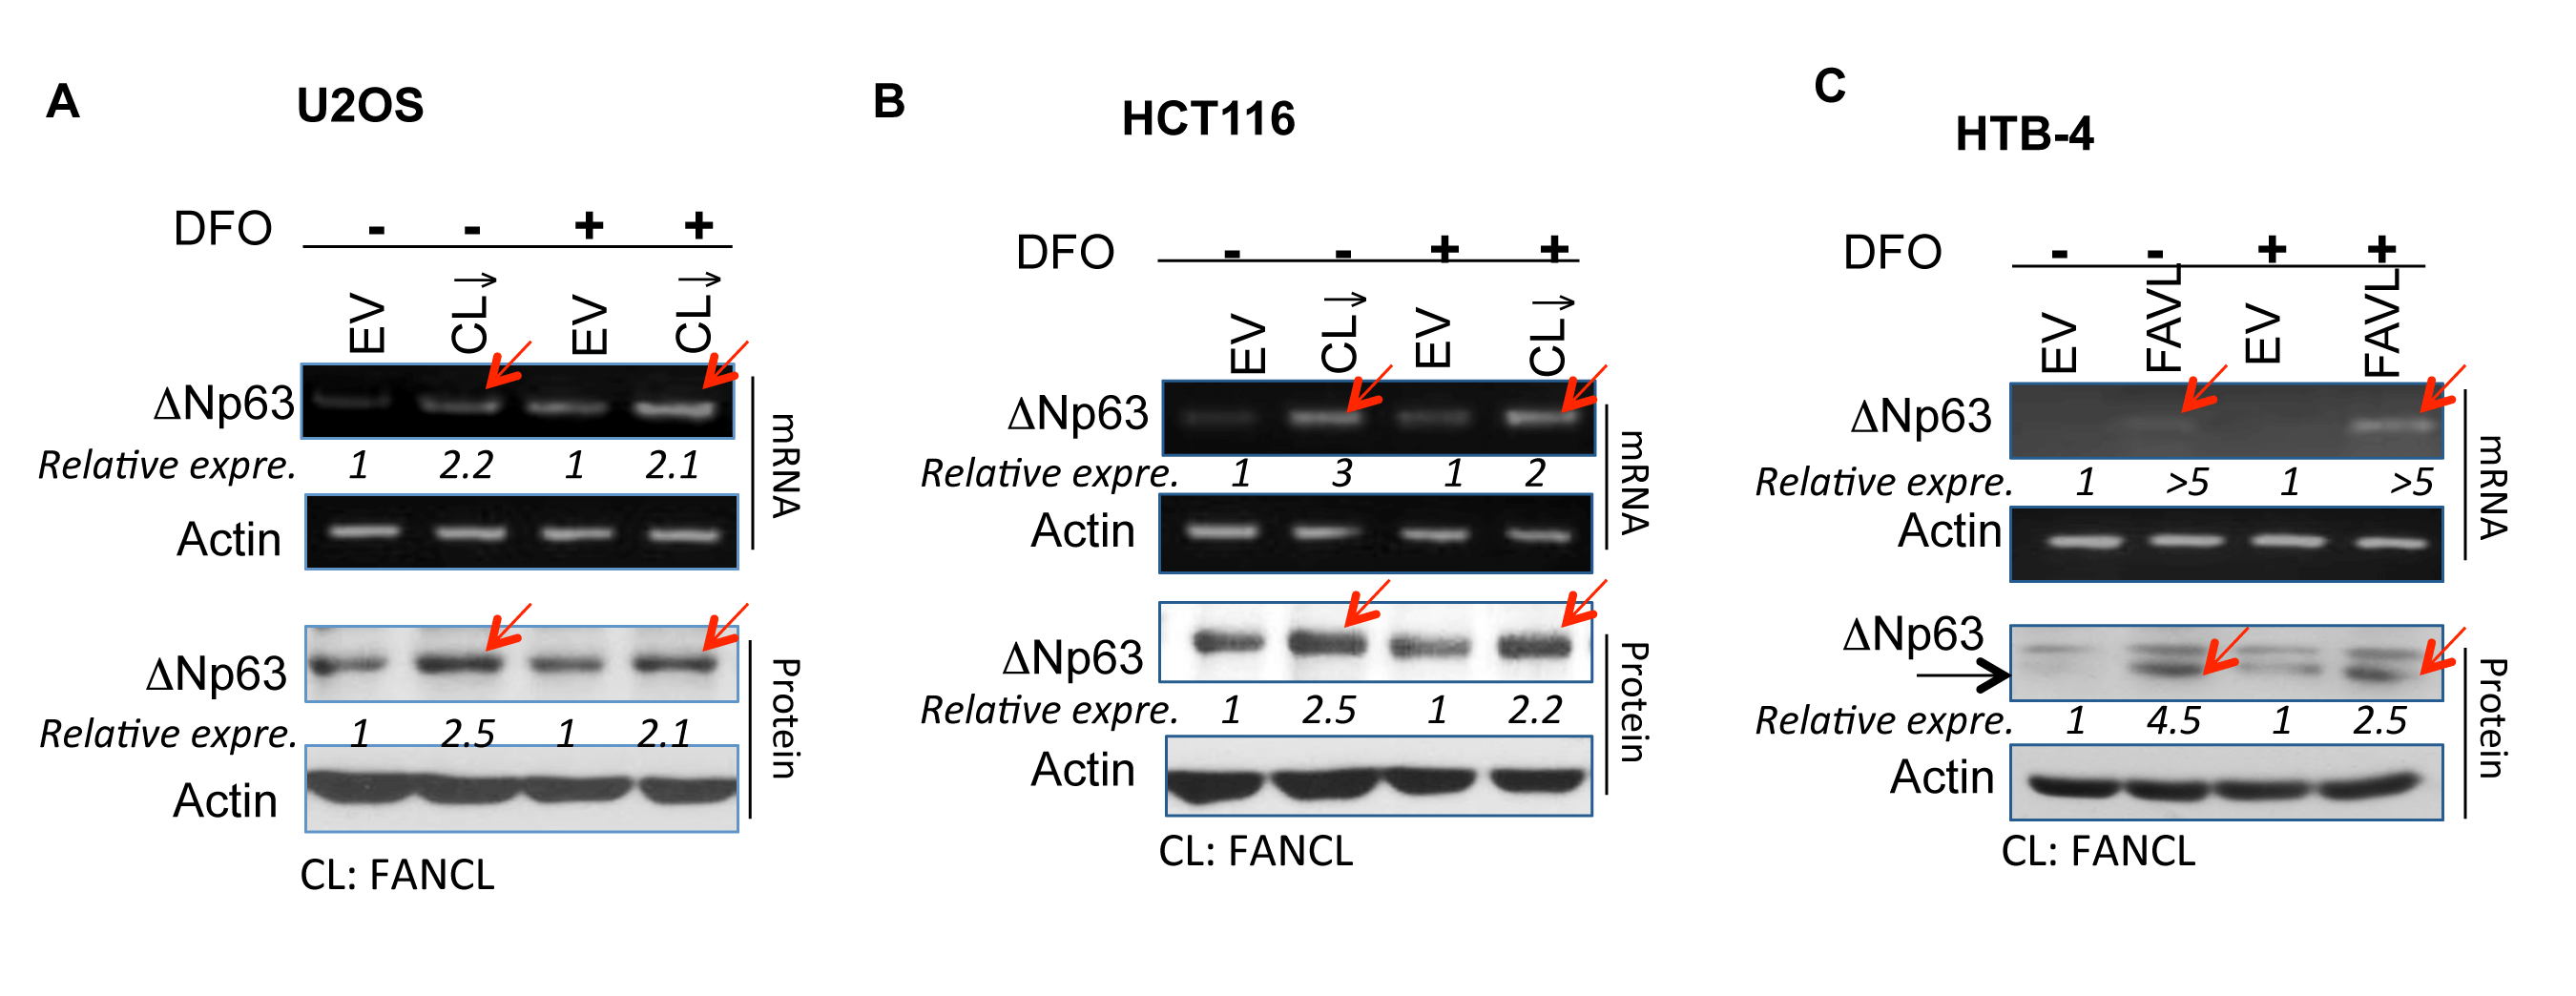 ∆Np63 expression is elevated in cancer cells carrying an inactivated FA pathway/ inactivated FANCD2 under normoxic and hypoxic conditions.